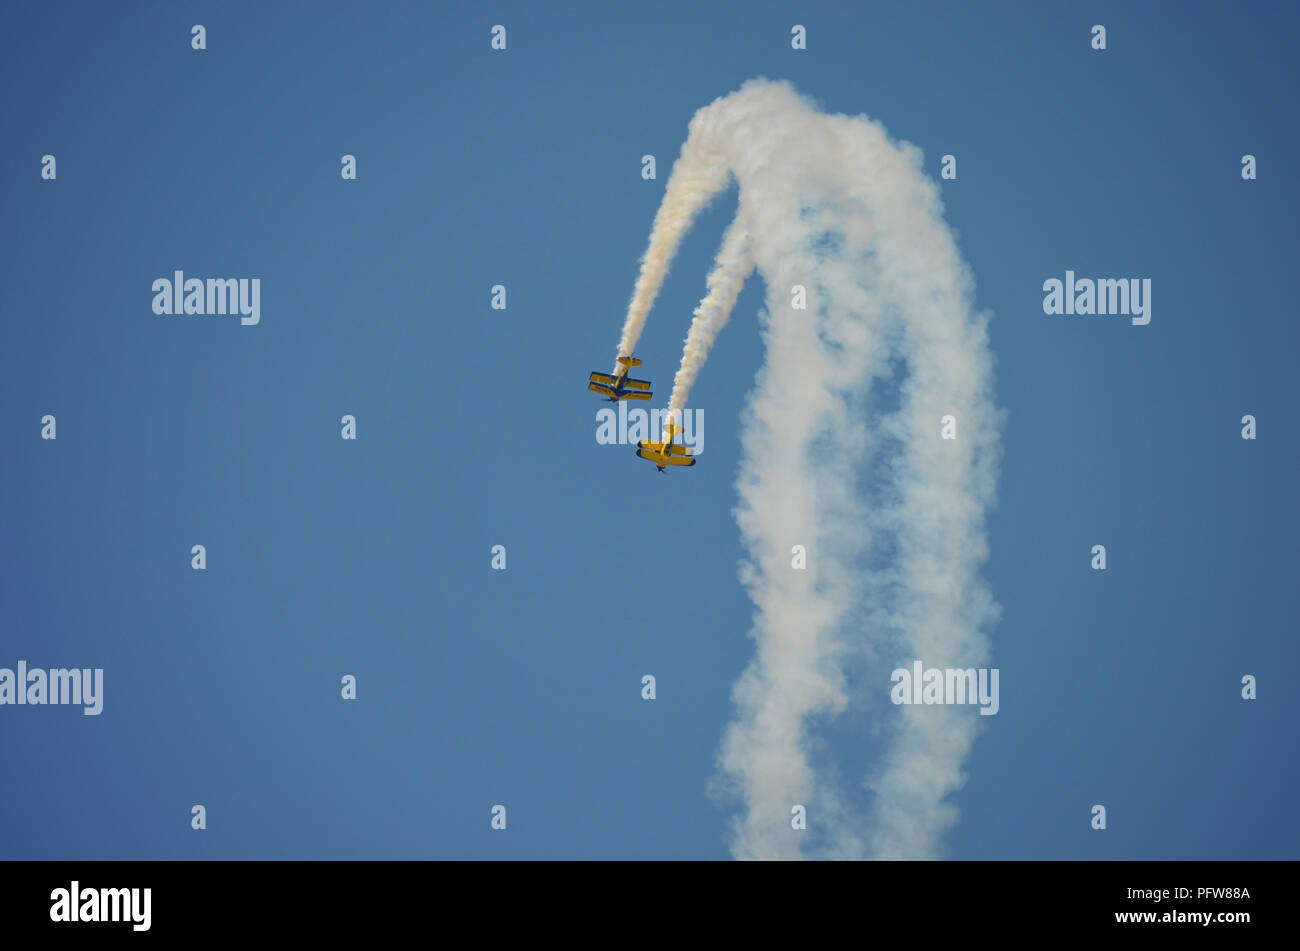 Four flights formation - Stock Image